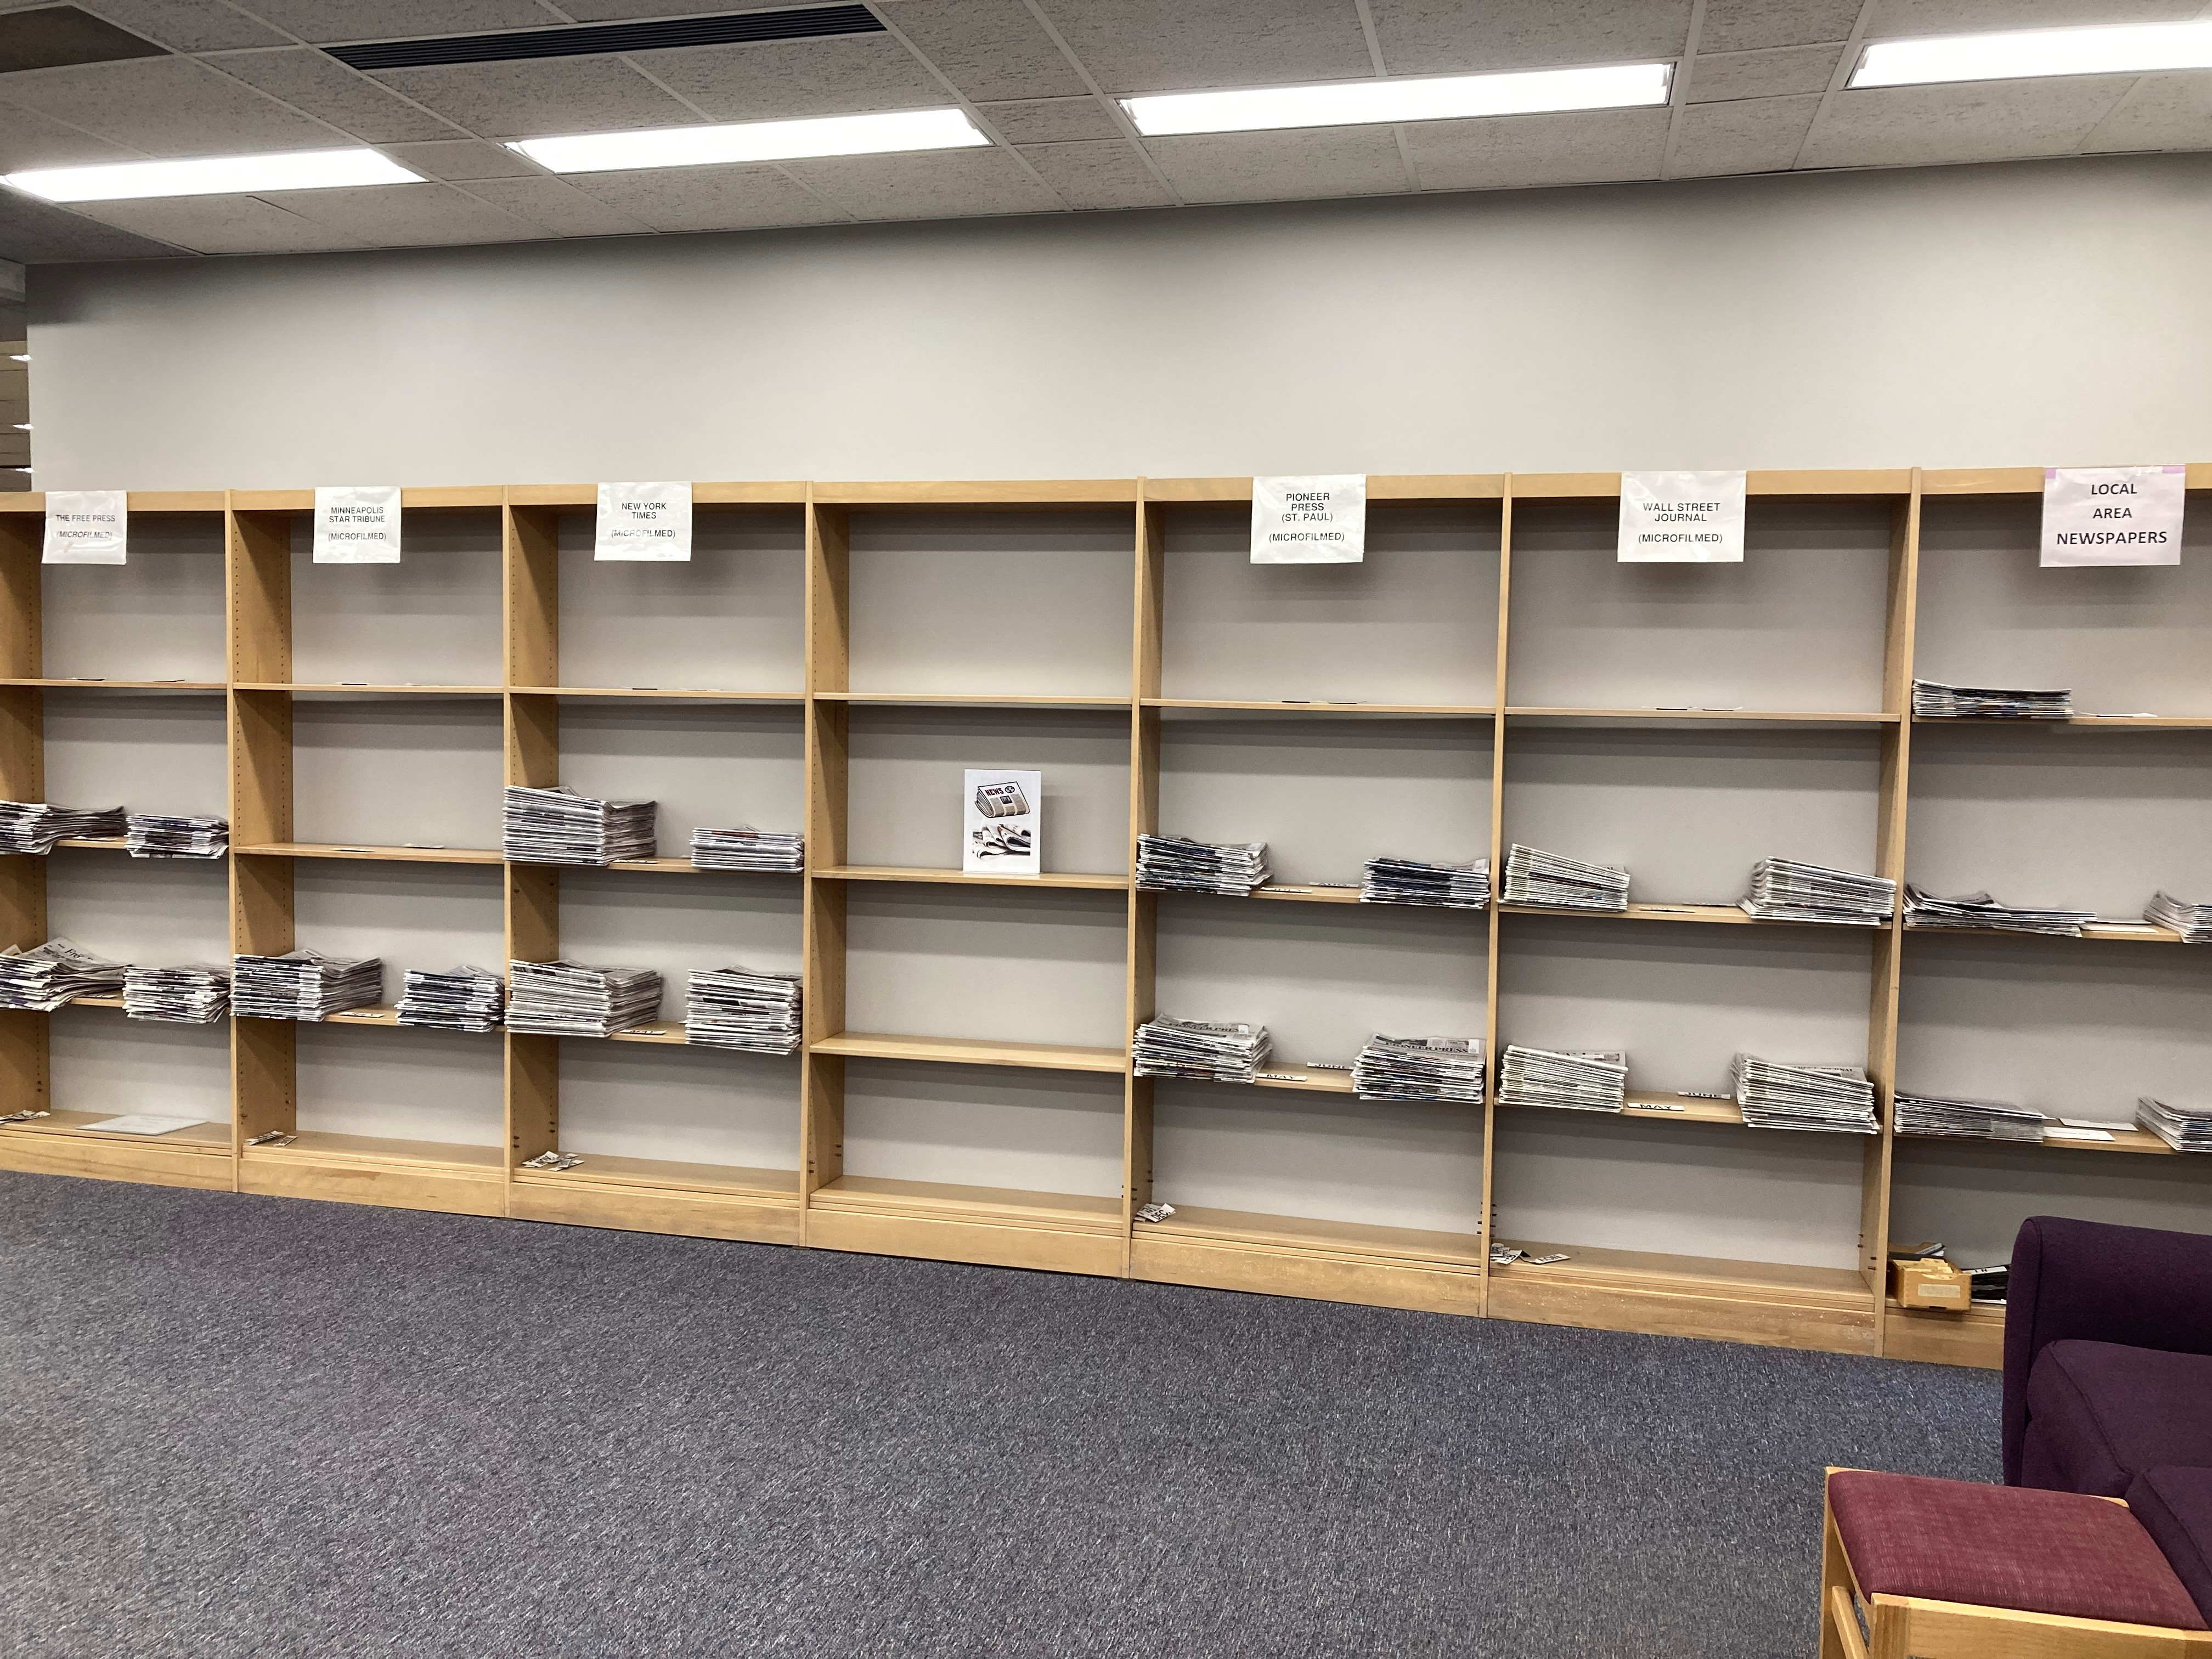 the newspaper area has shelves of current newspapers organized by date